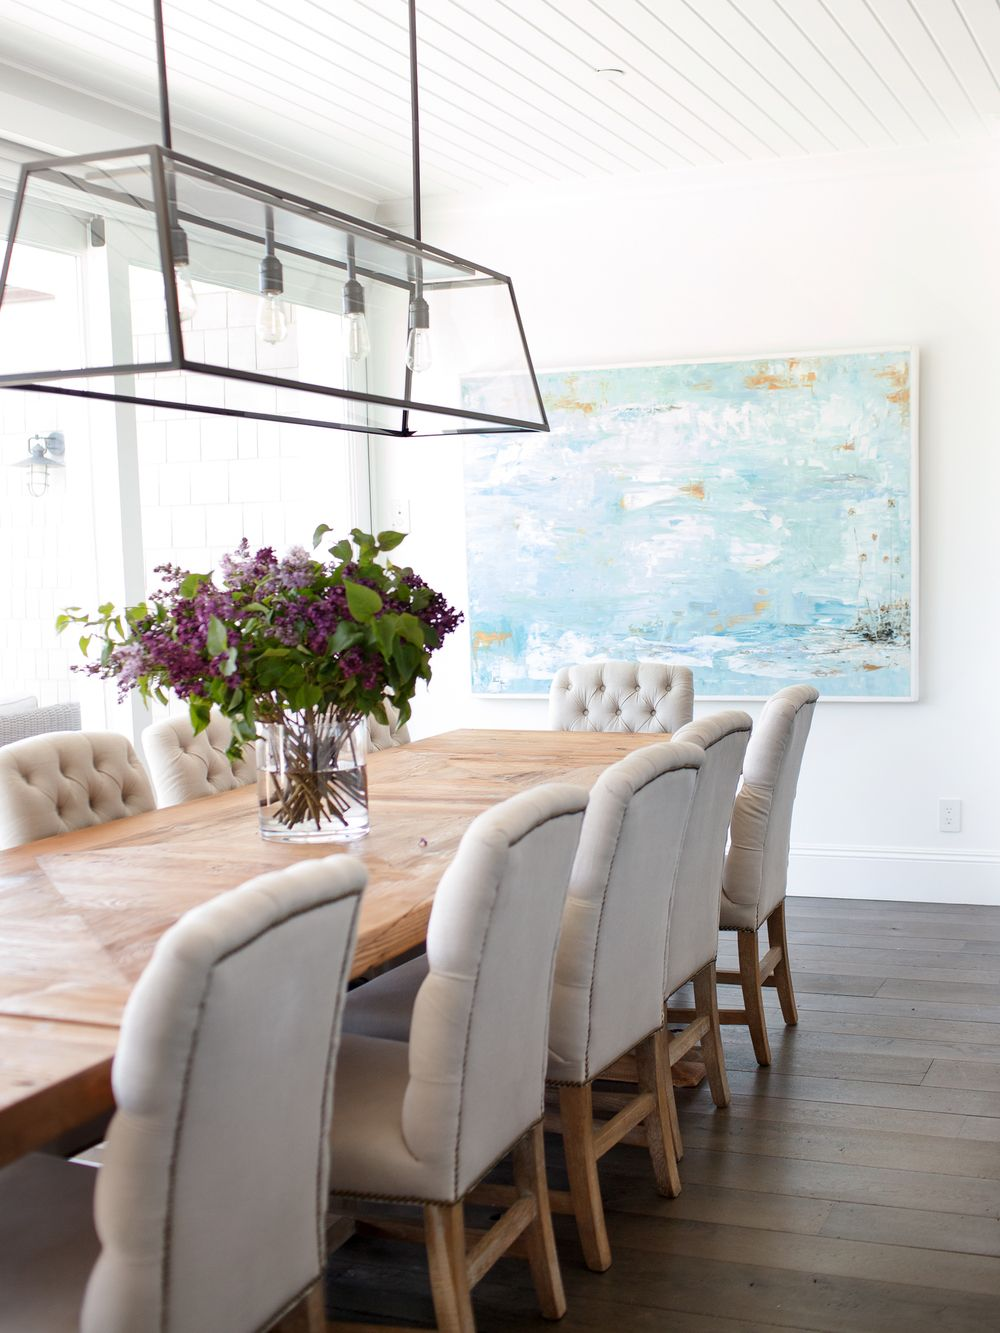 Light Kitchen Table New York City Hotels With Kitchens Beachy Dining Room Beadboard Ceiling Linear